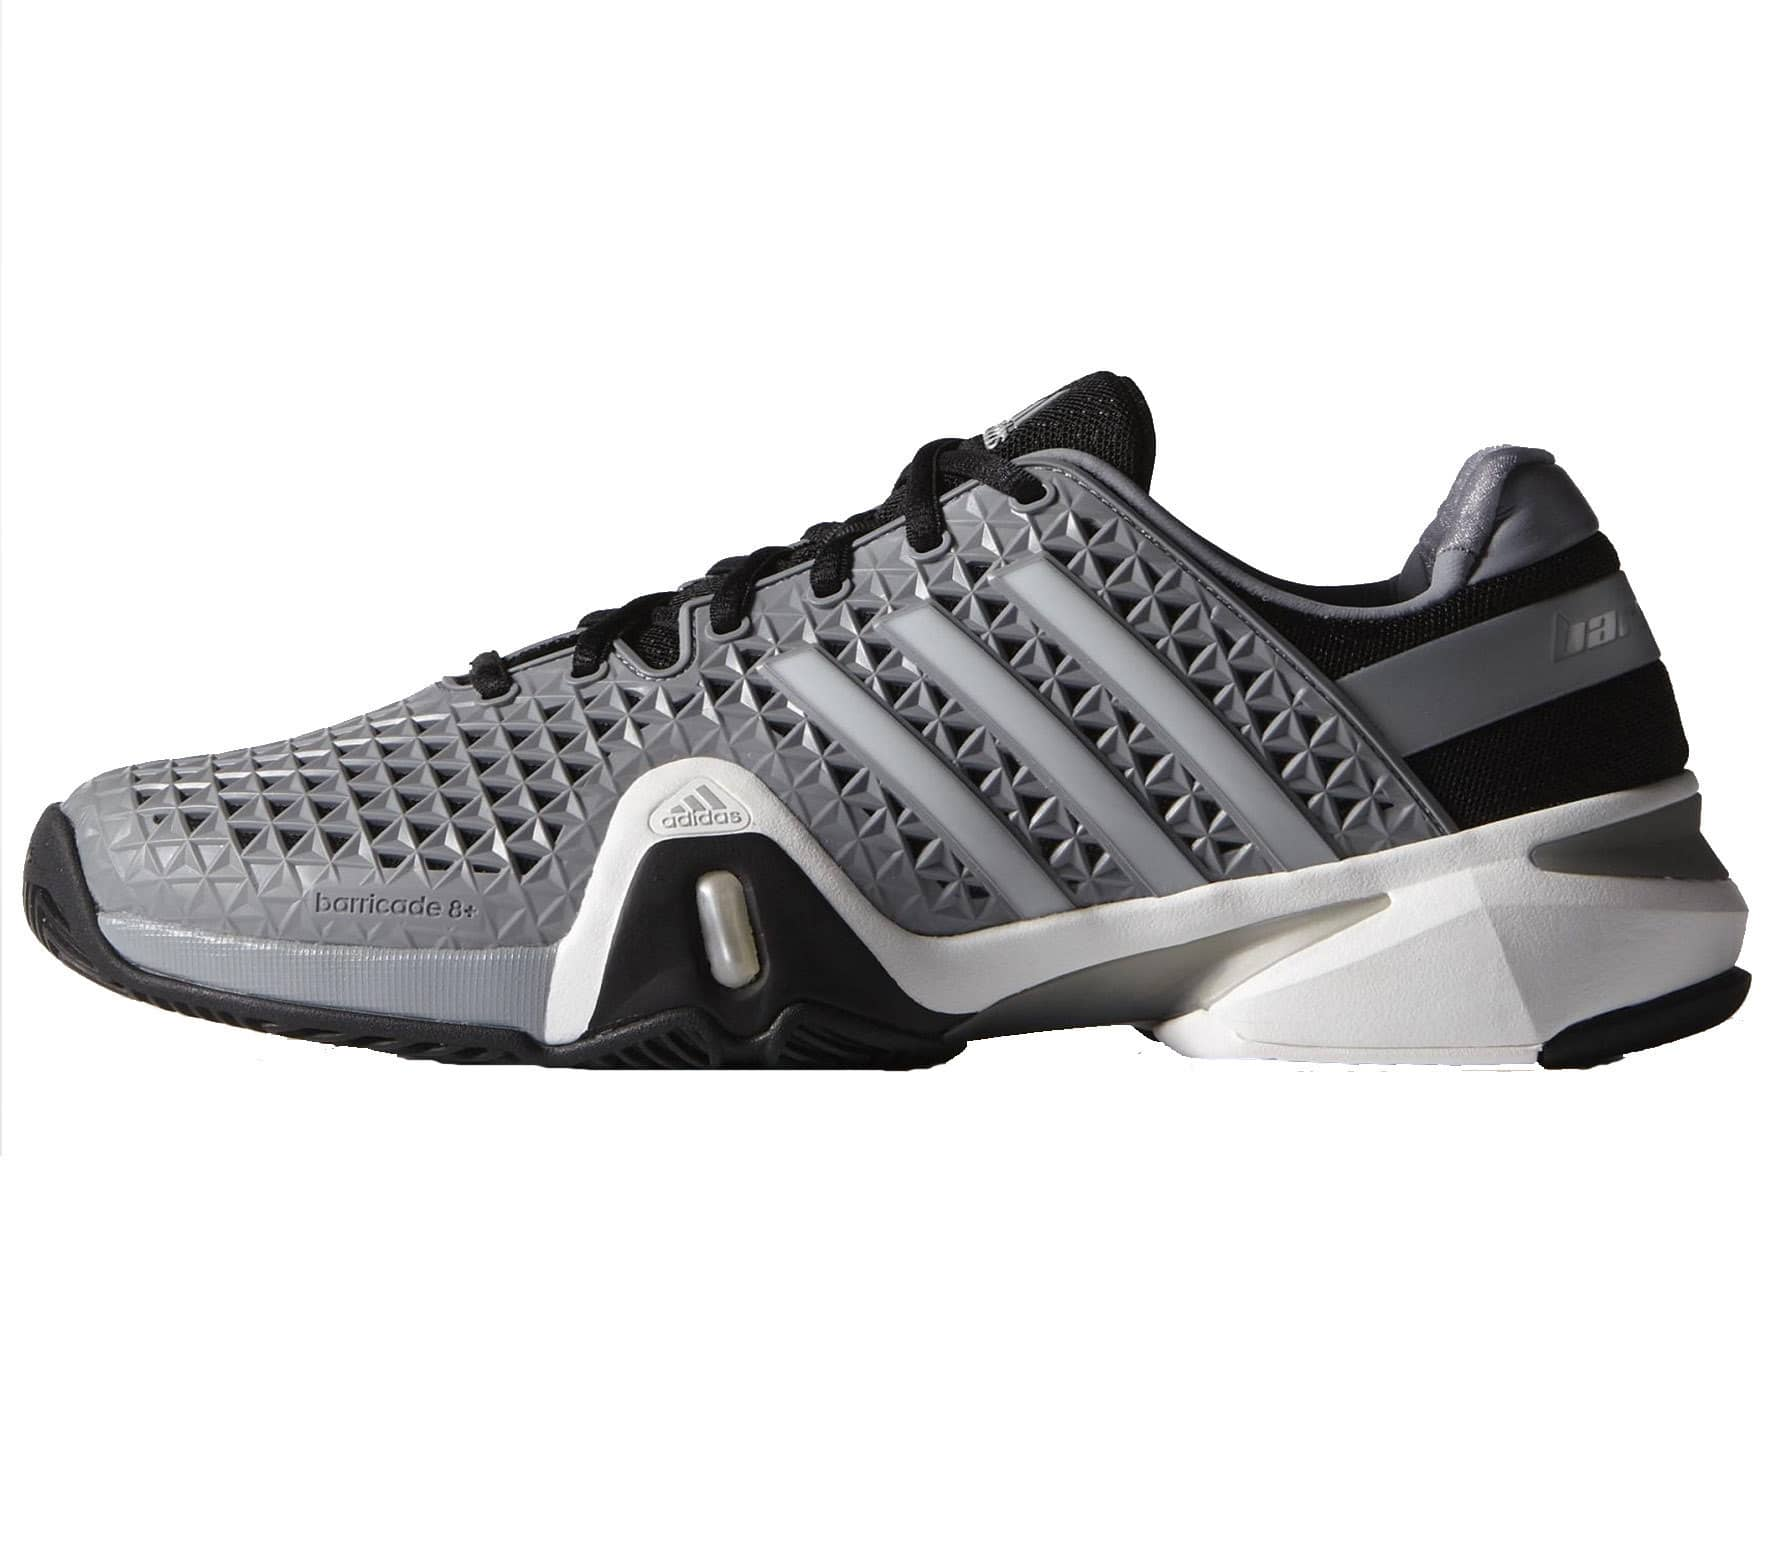 new style 9c574 f60ee Adidas - Adipower Barricade 8+ Synthetic men s tennis shoes (grey silver)